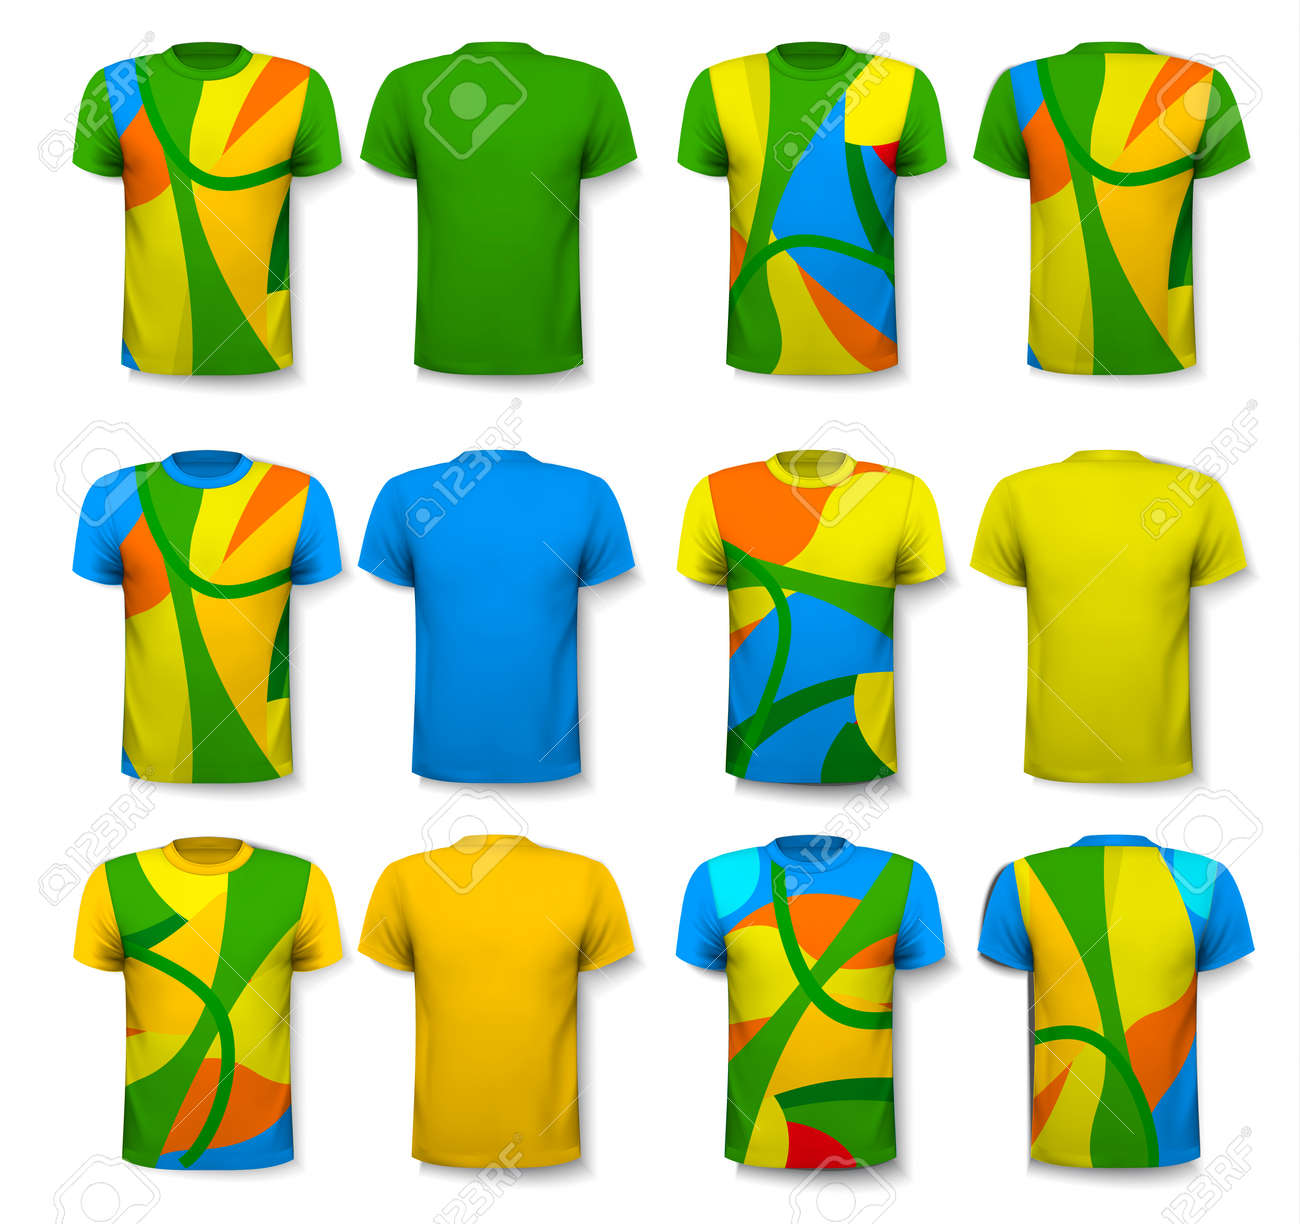 cca9a9b1 Colorful abstract male t-shirts. Design template. Vector. Stock Vector -  60692223